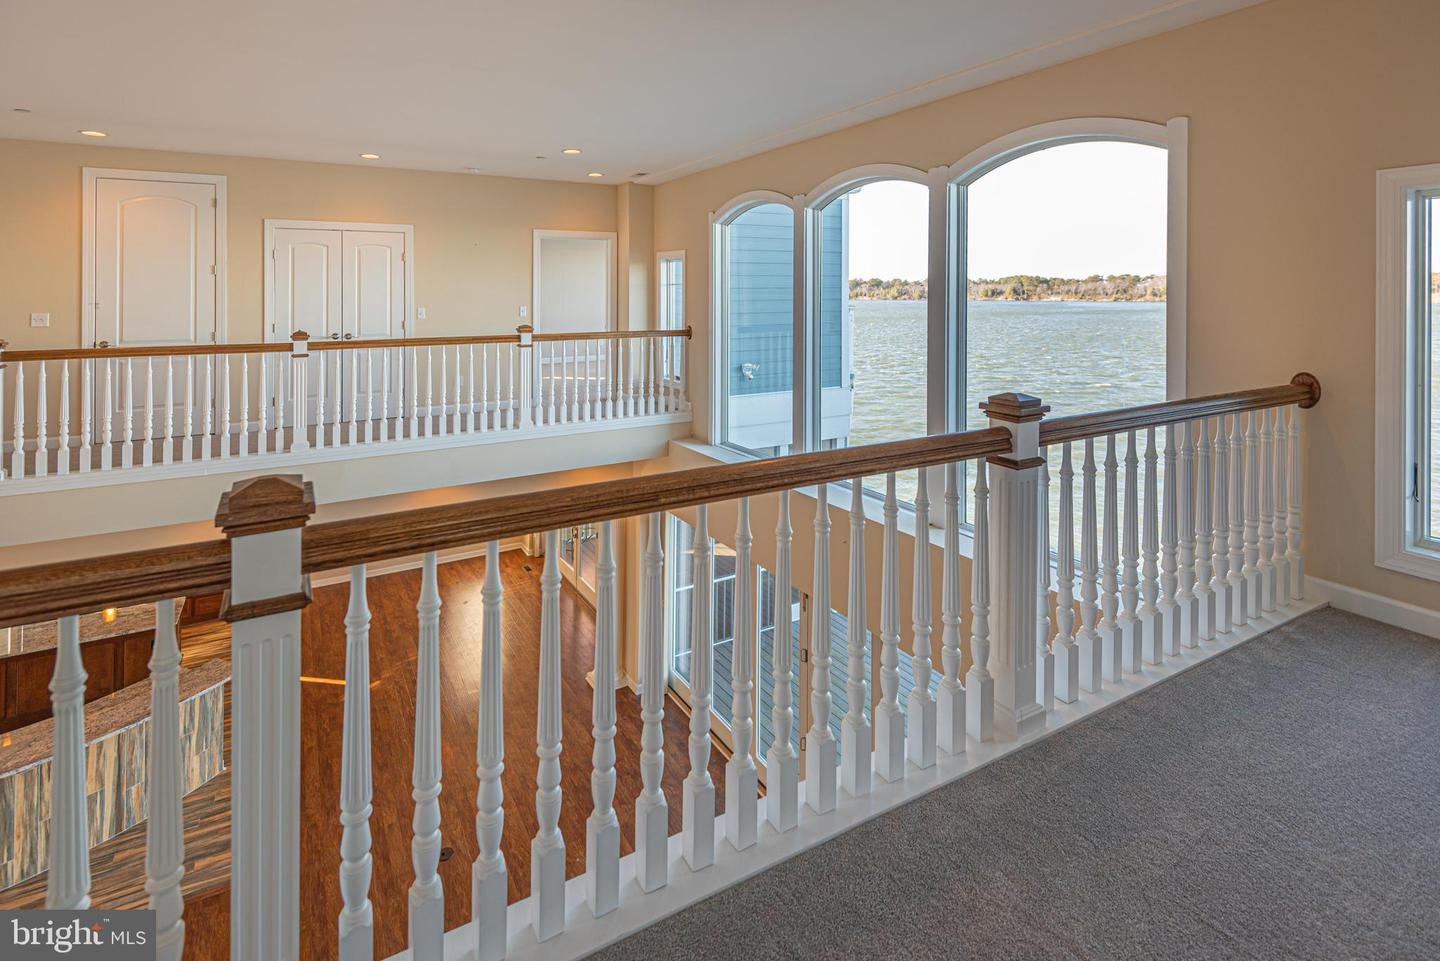 DESU154270-304005809486-2020-02-10-14-33-00 35 Inlet View | North Bethany, DE Real Estate For Sale | MLS# Desu154270  - Ocean Atlantic